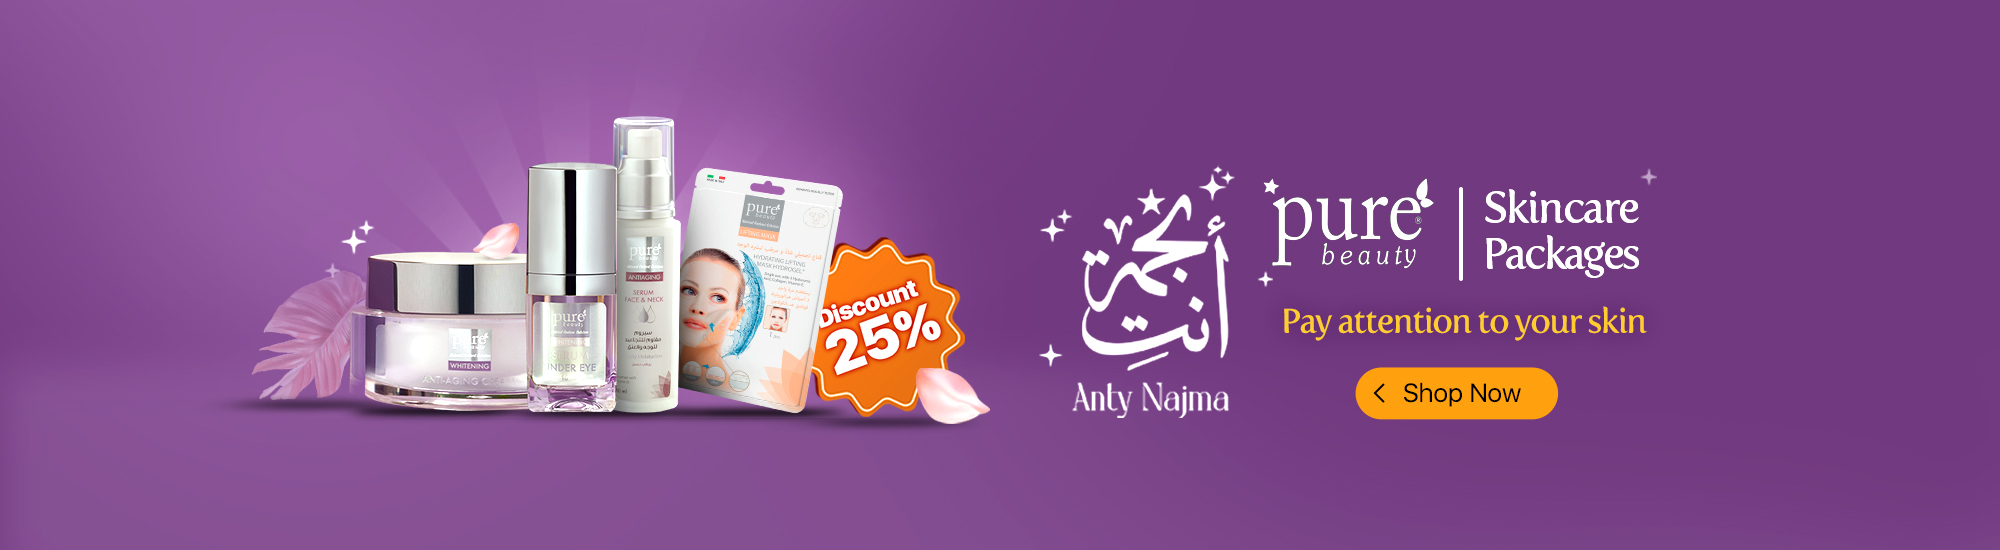 Anty Najma | Pure beauty Skincare Packages